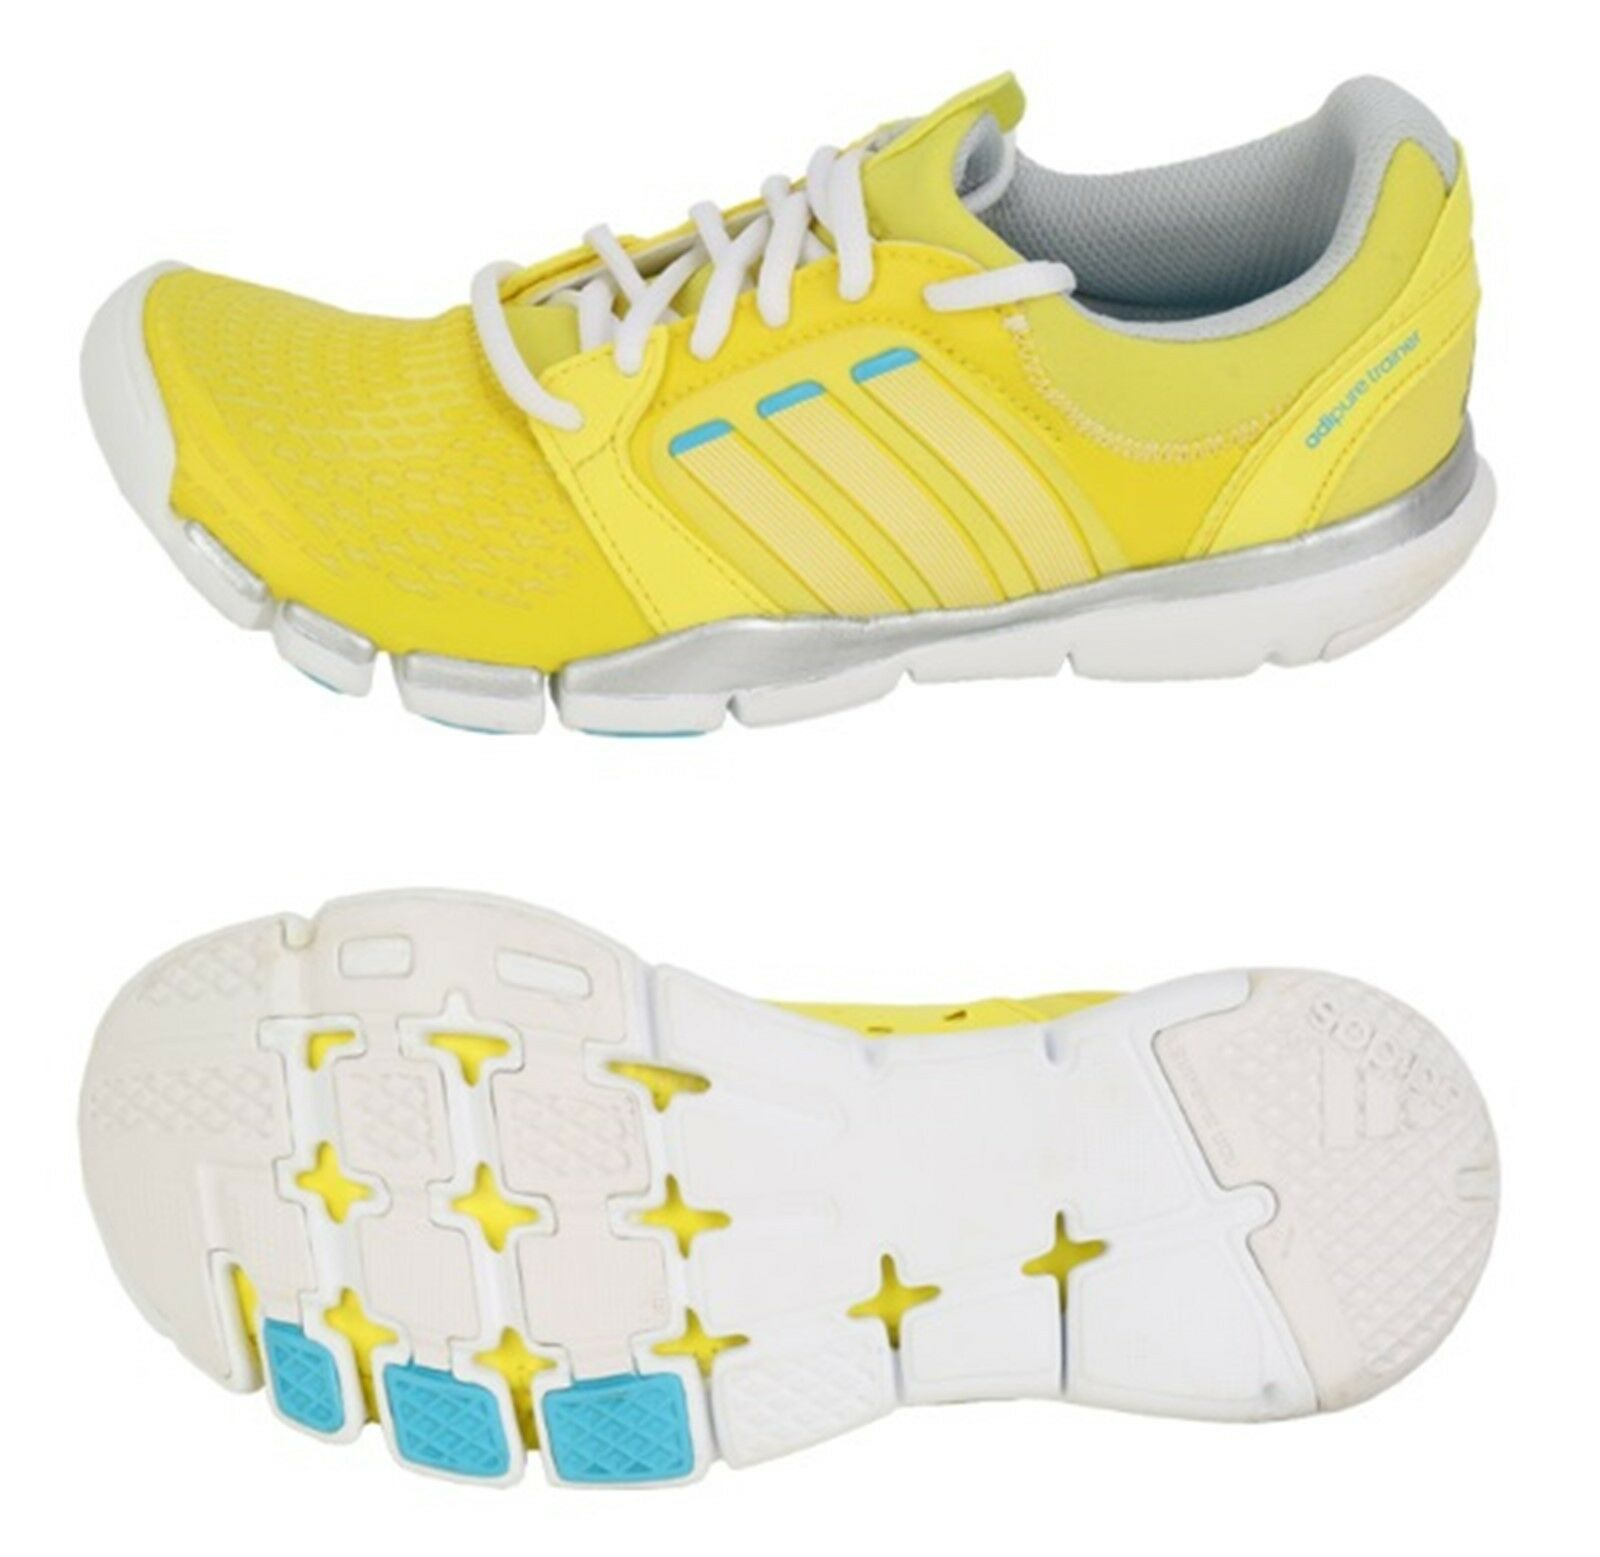 Adidas Women Adipure TR 360 Training shoes Running  Yellow Sneakers shoes Q20512  best service